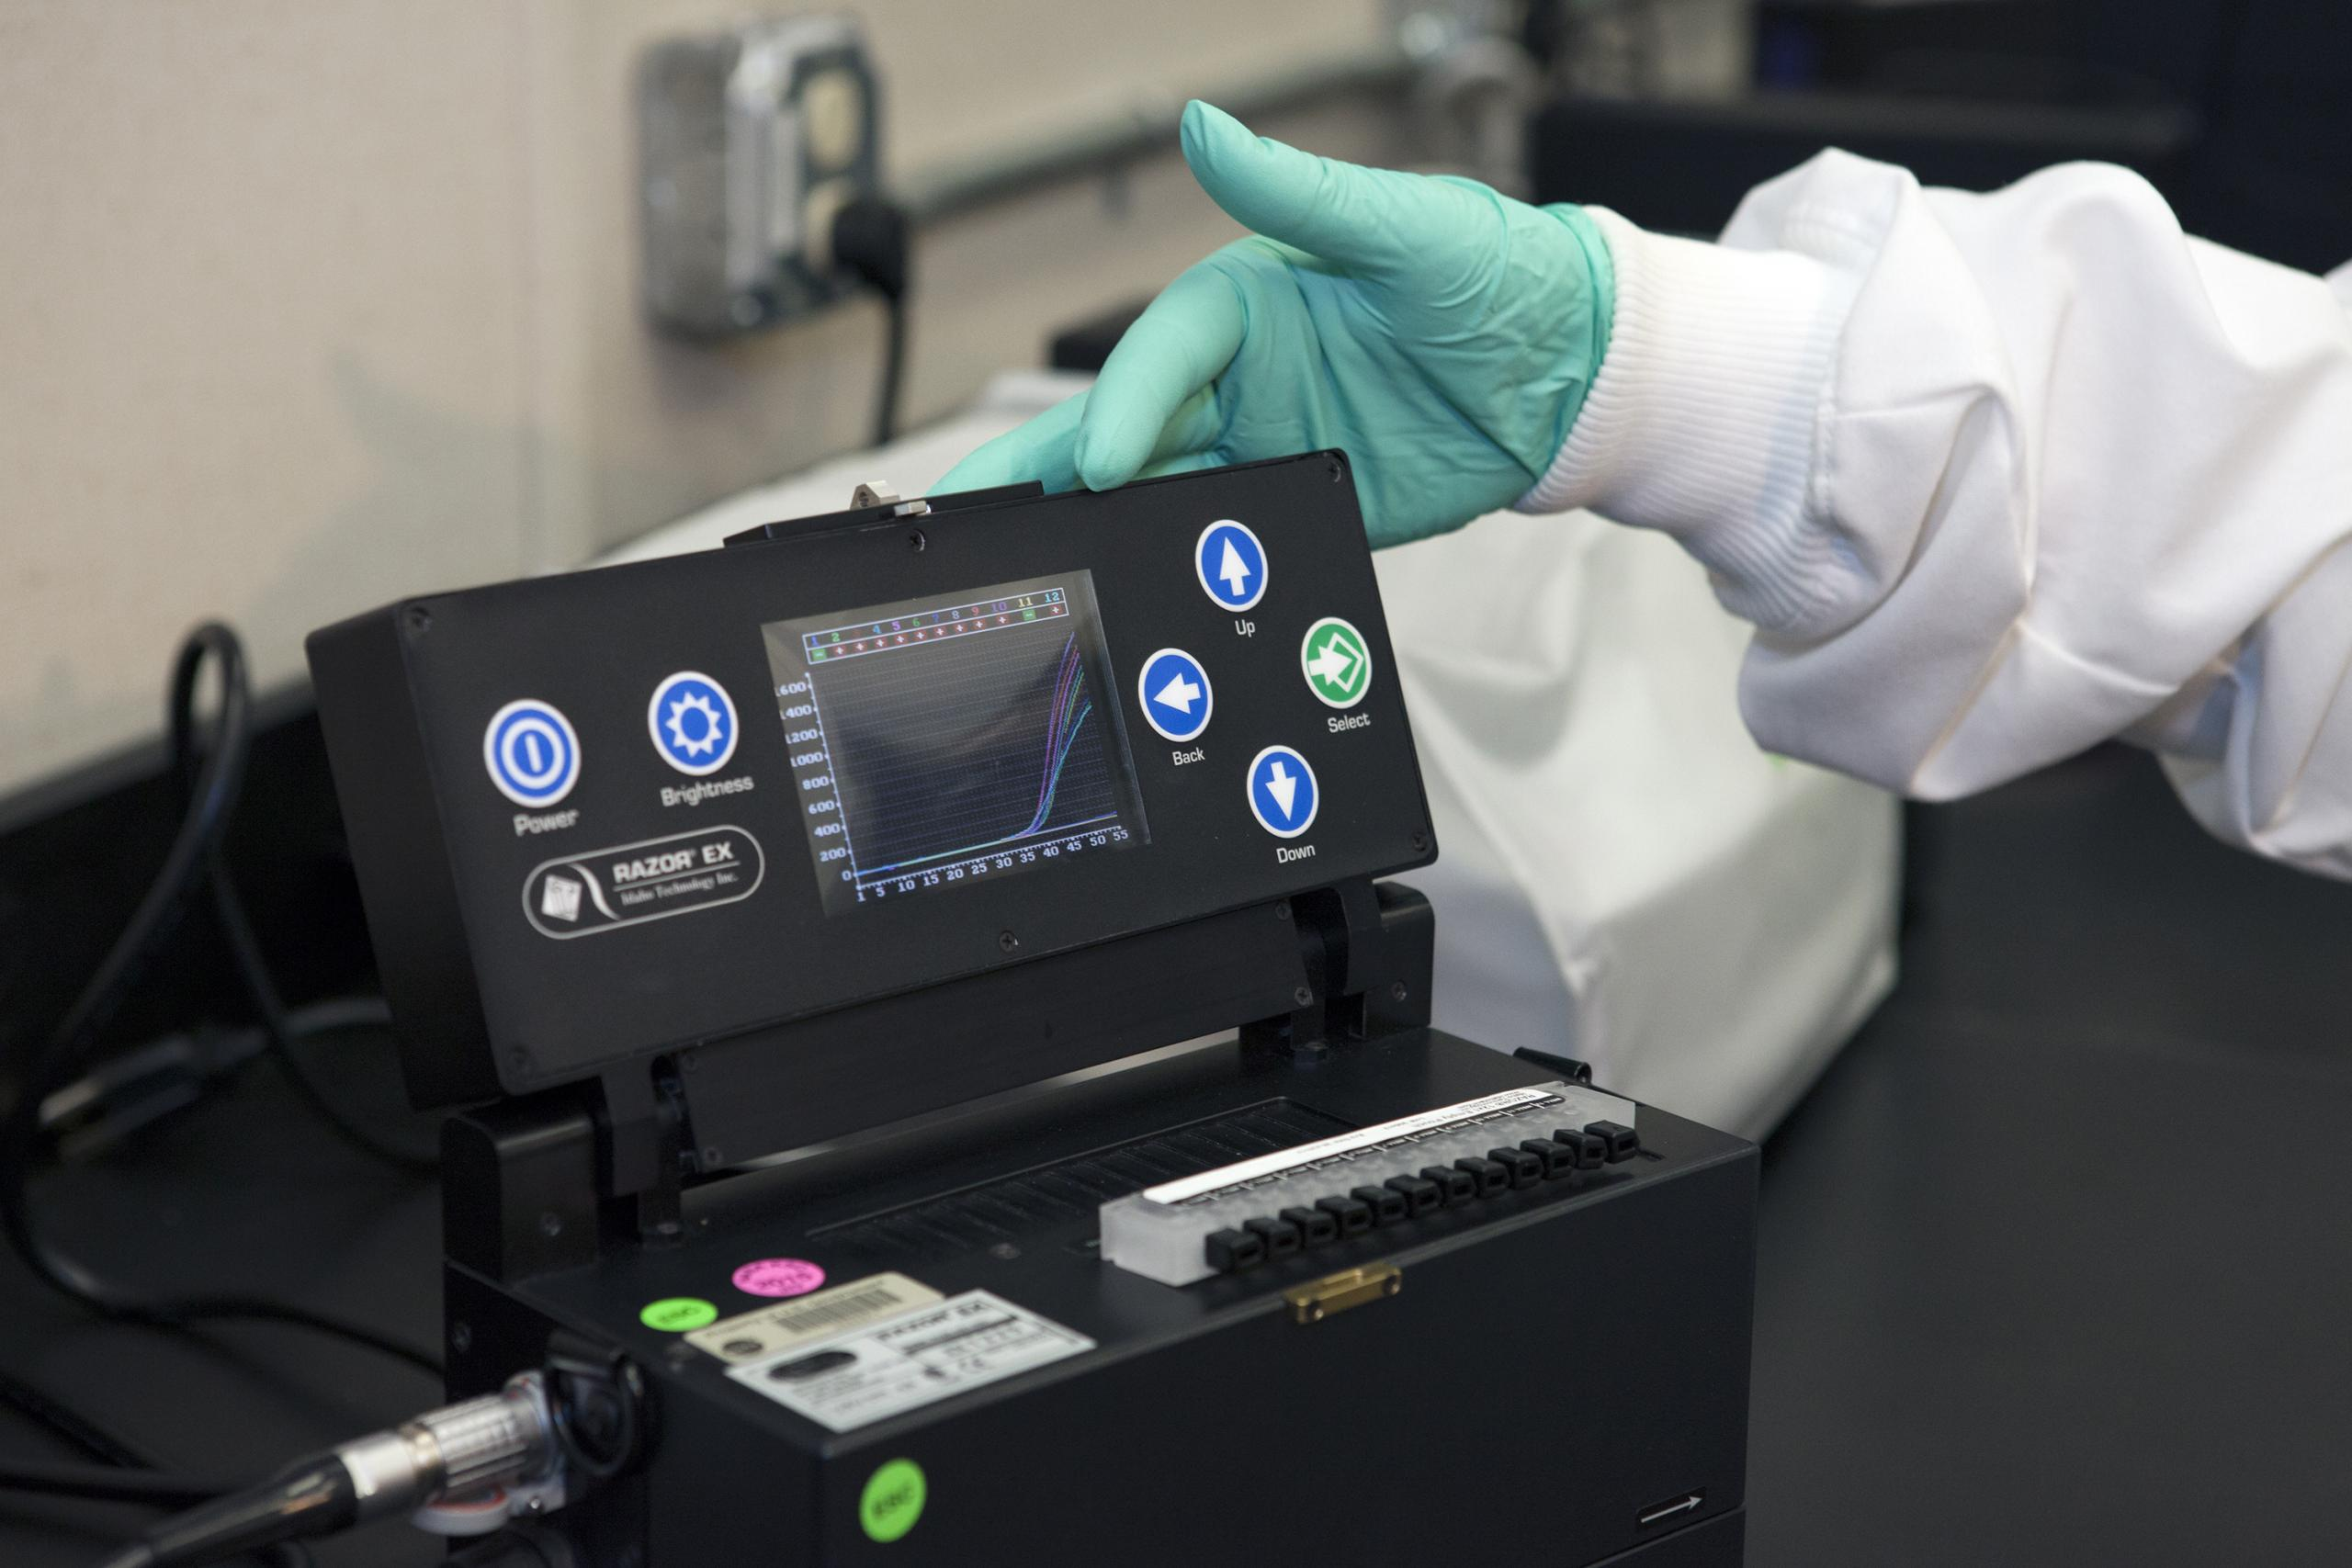 Scientist's hand pointing to display on black test equipment.